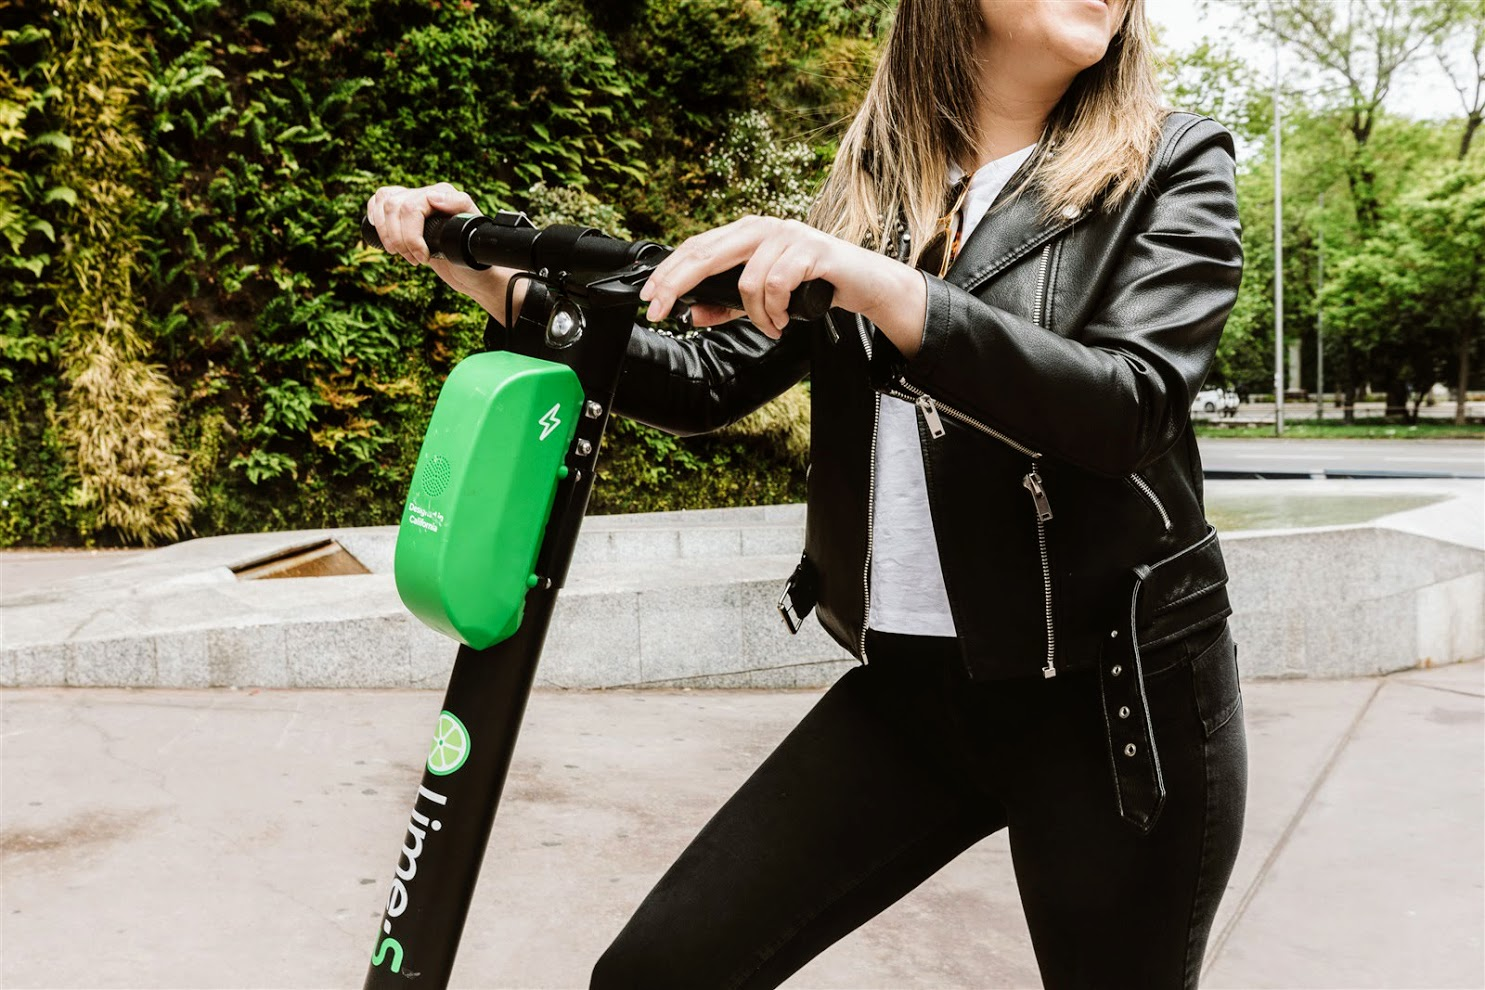 Lime Scooter File